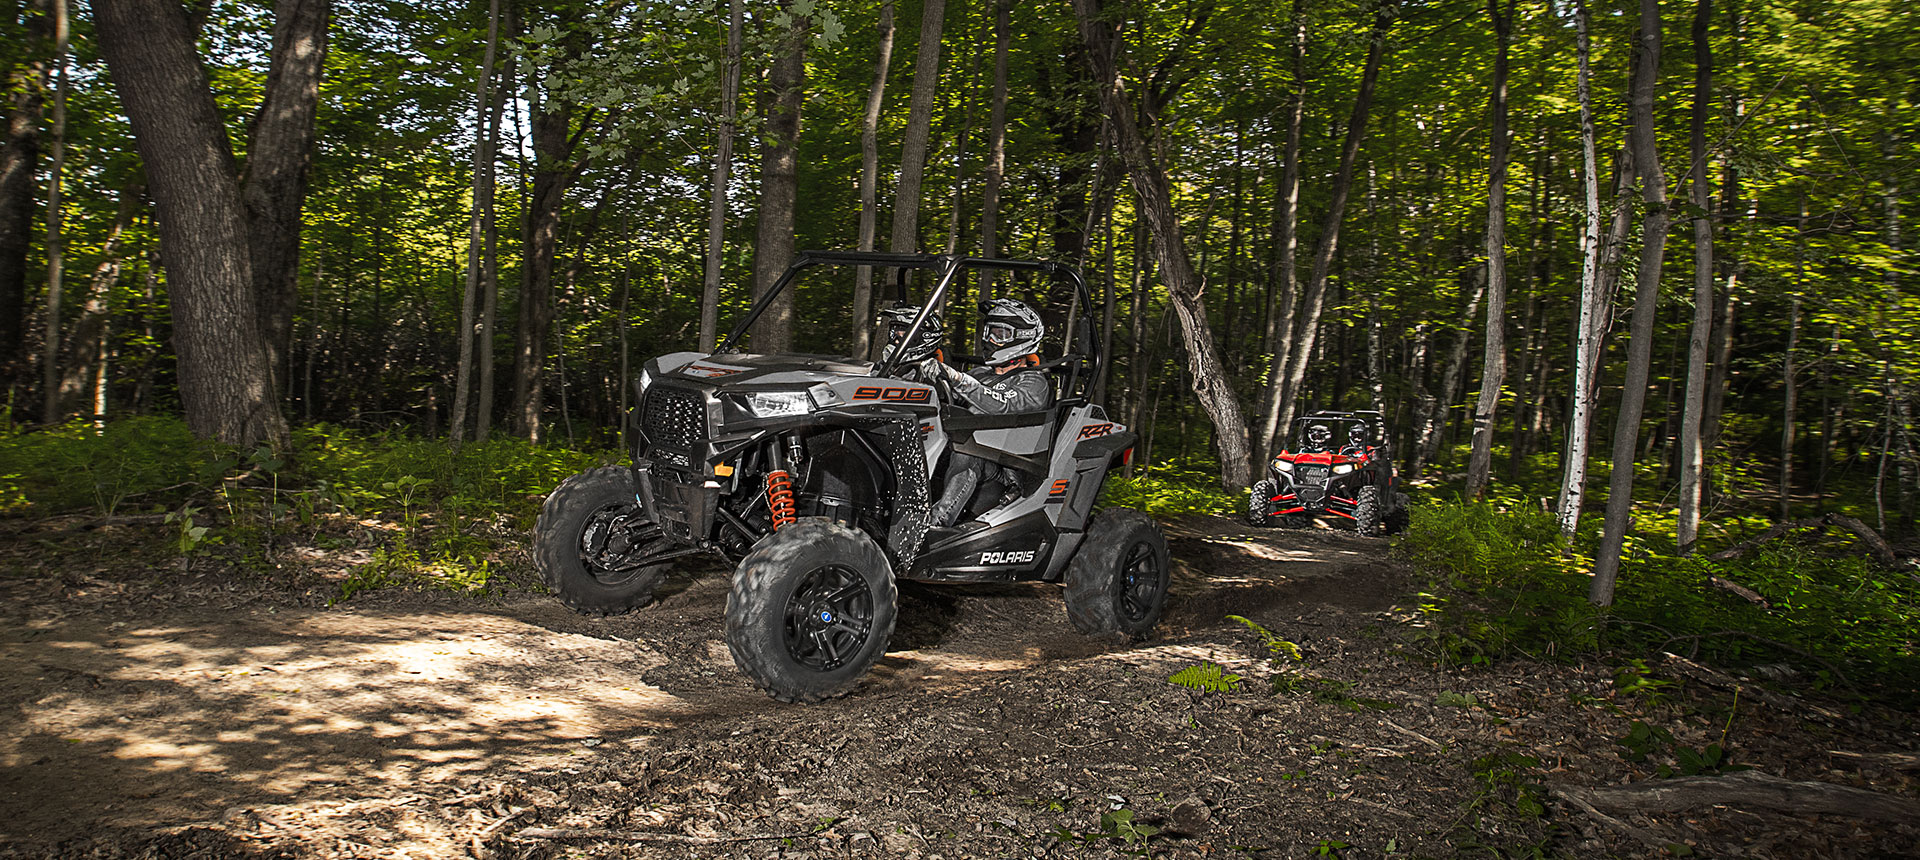 2019 Polaris RZR S 900 in La Grange, Kentucky - Photo 8